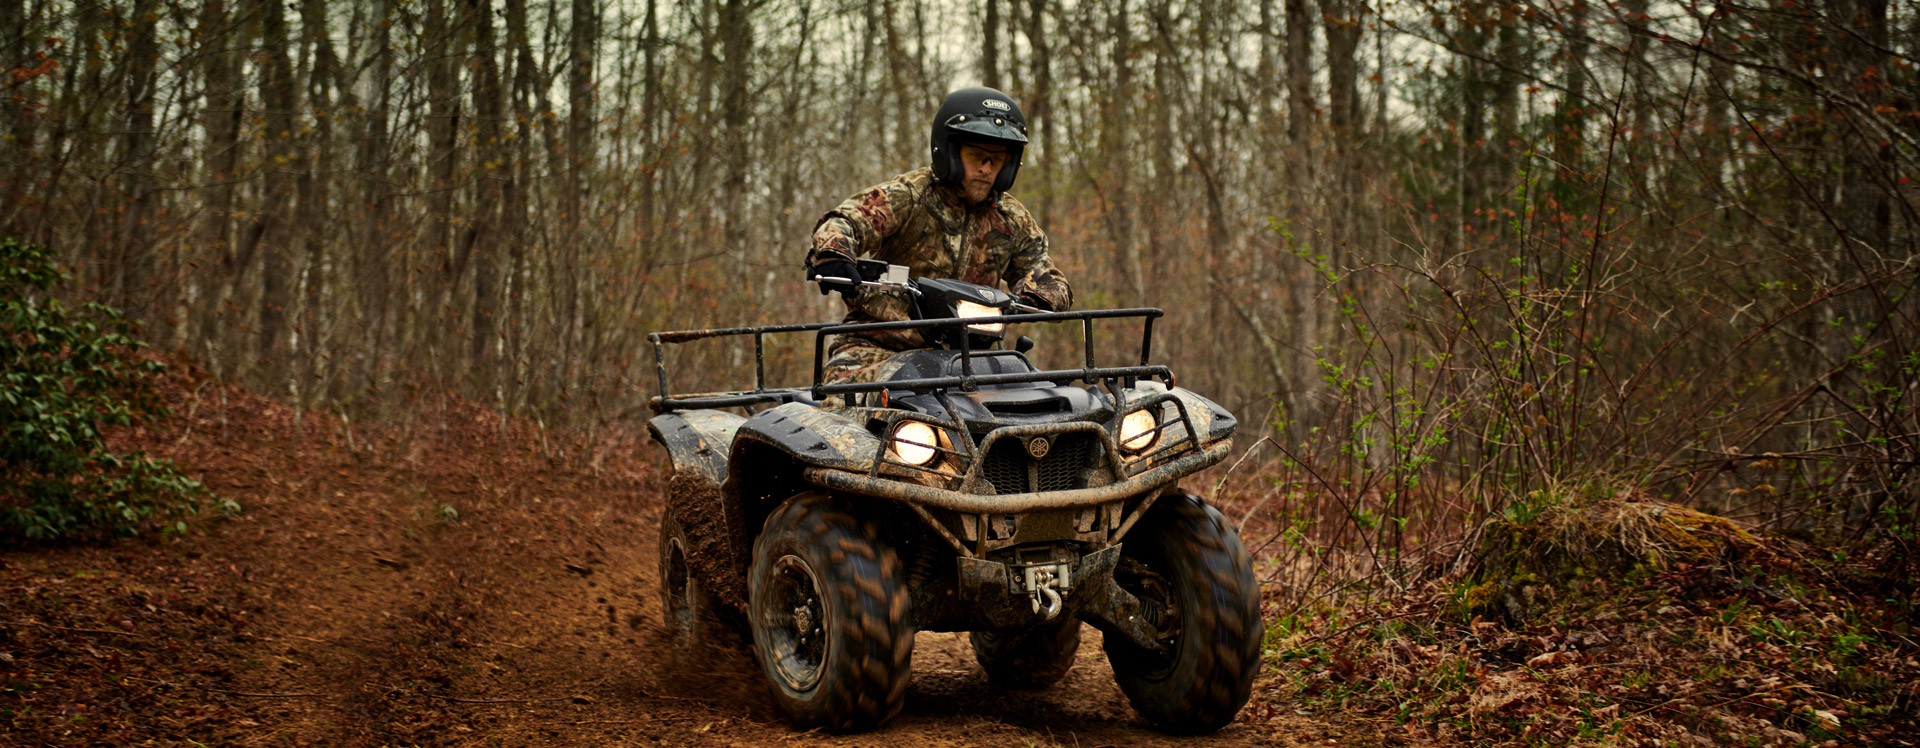 2019 Yamaha Kodiak-700-Eps